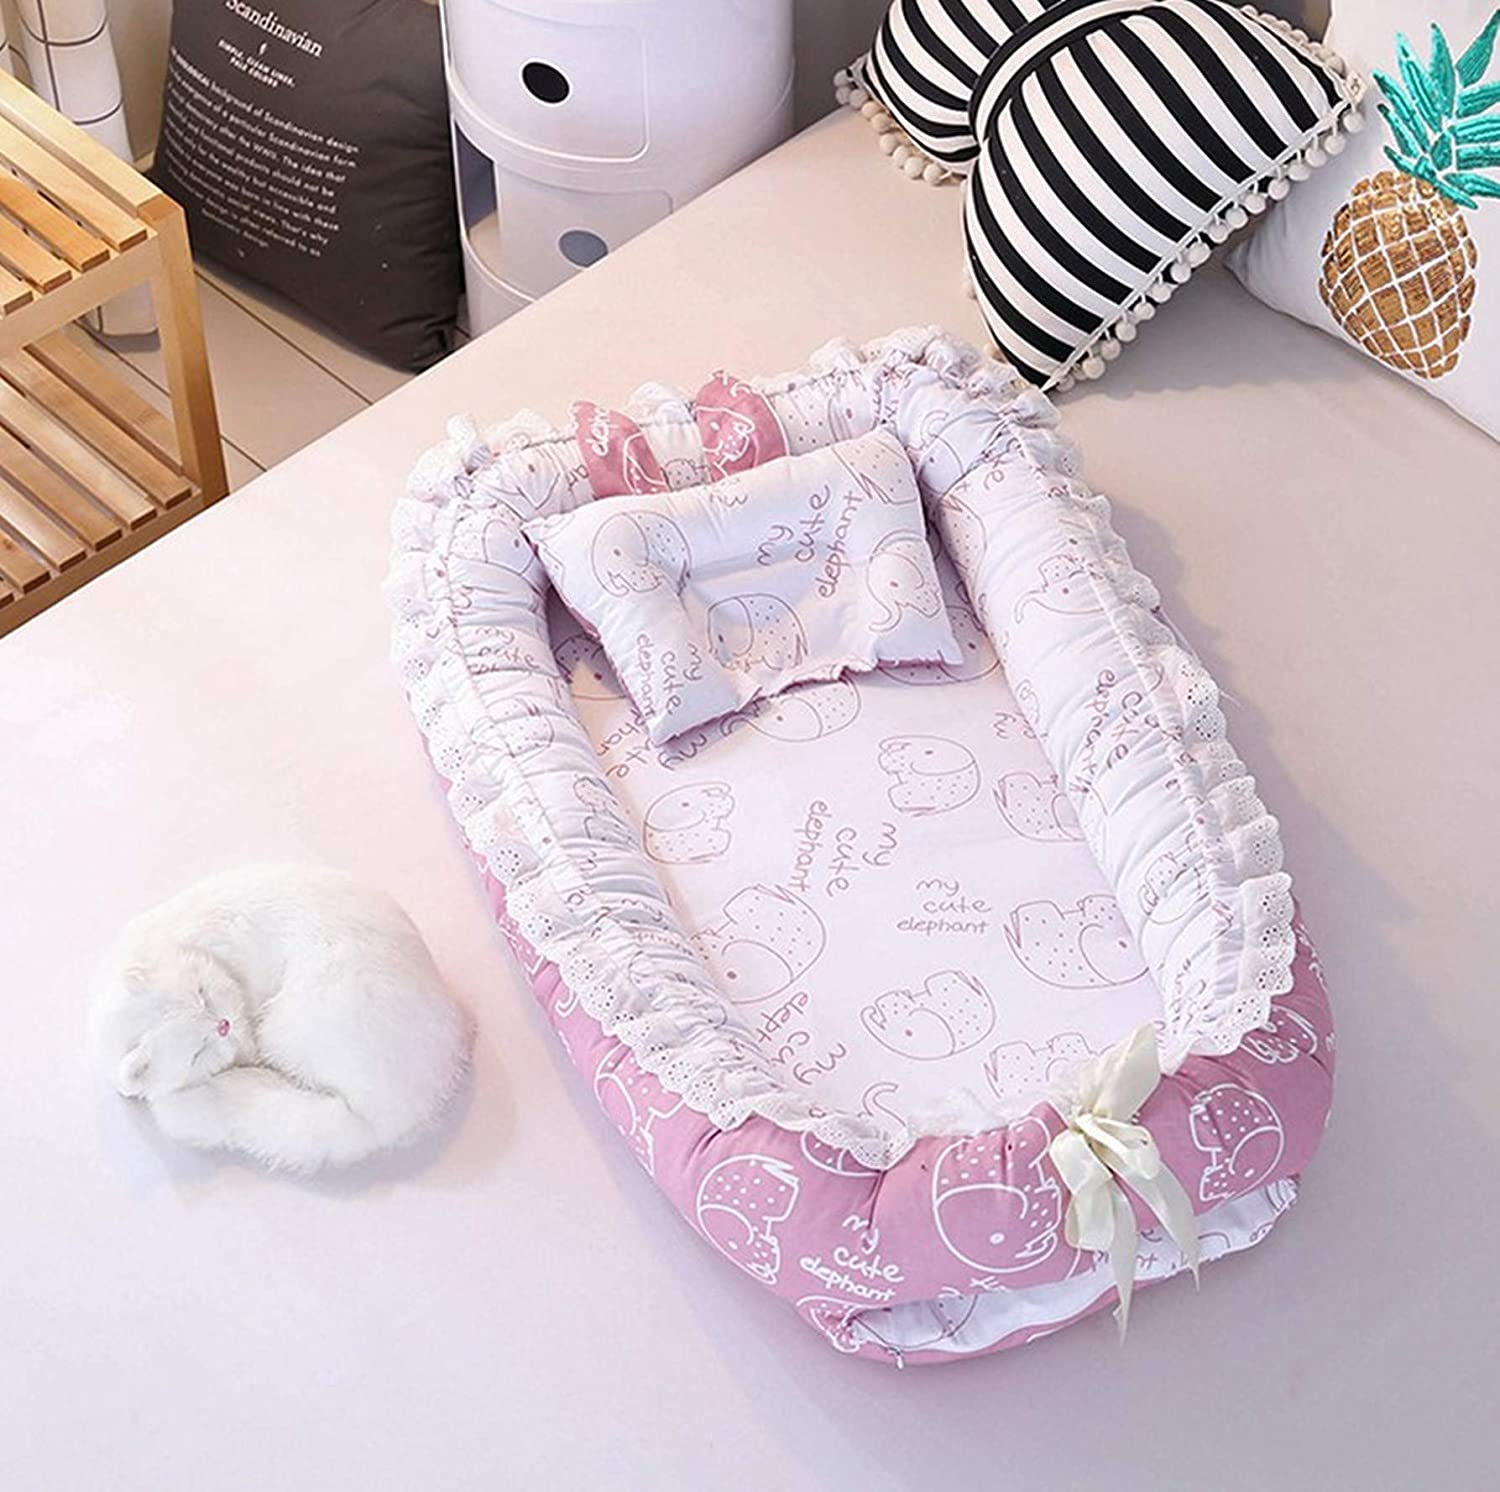 USTIDE Baby Bassinet Pink Ice-cream Breathable Bedding 100/% Cotton Portable Super Soft Bedding Set 2 pieces